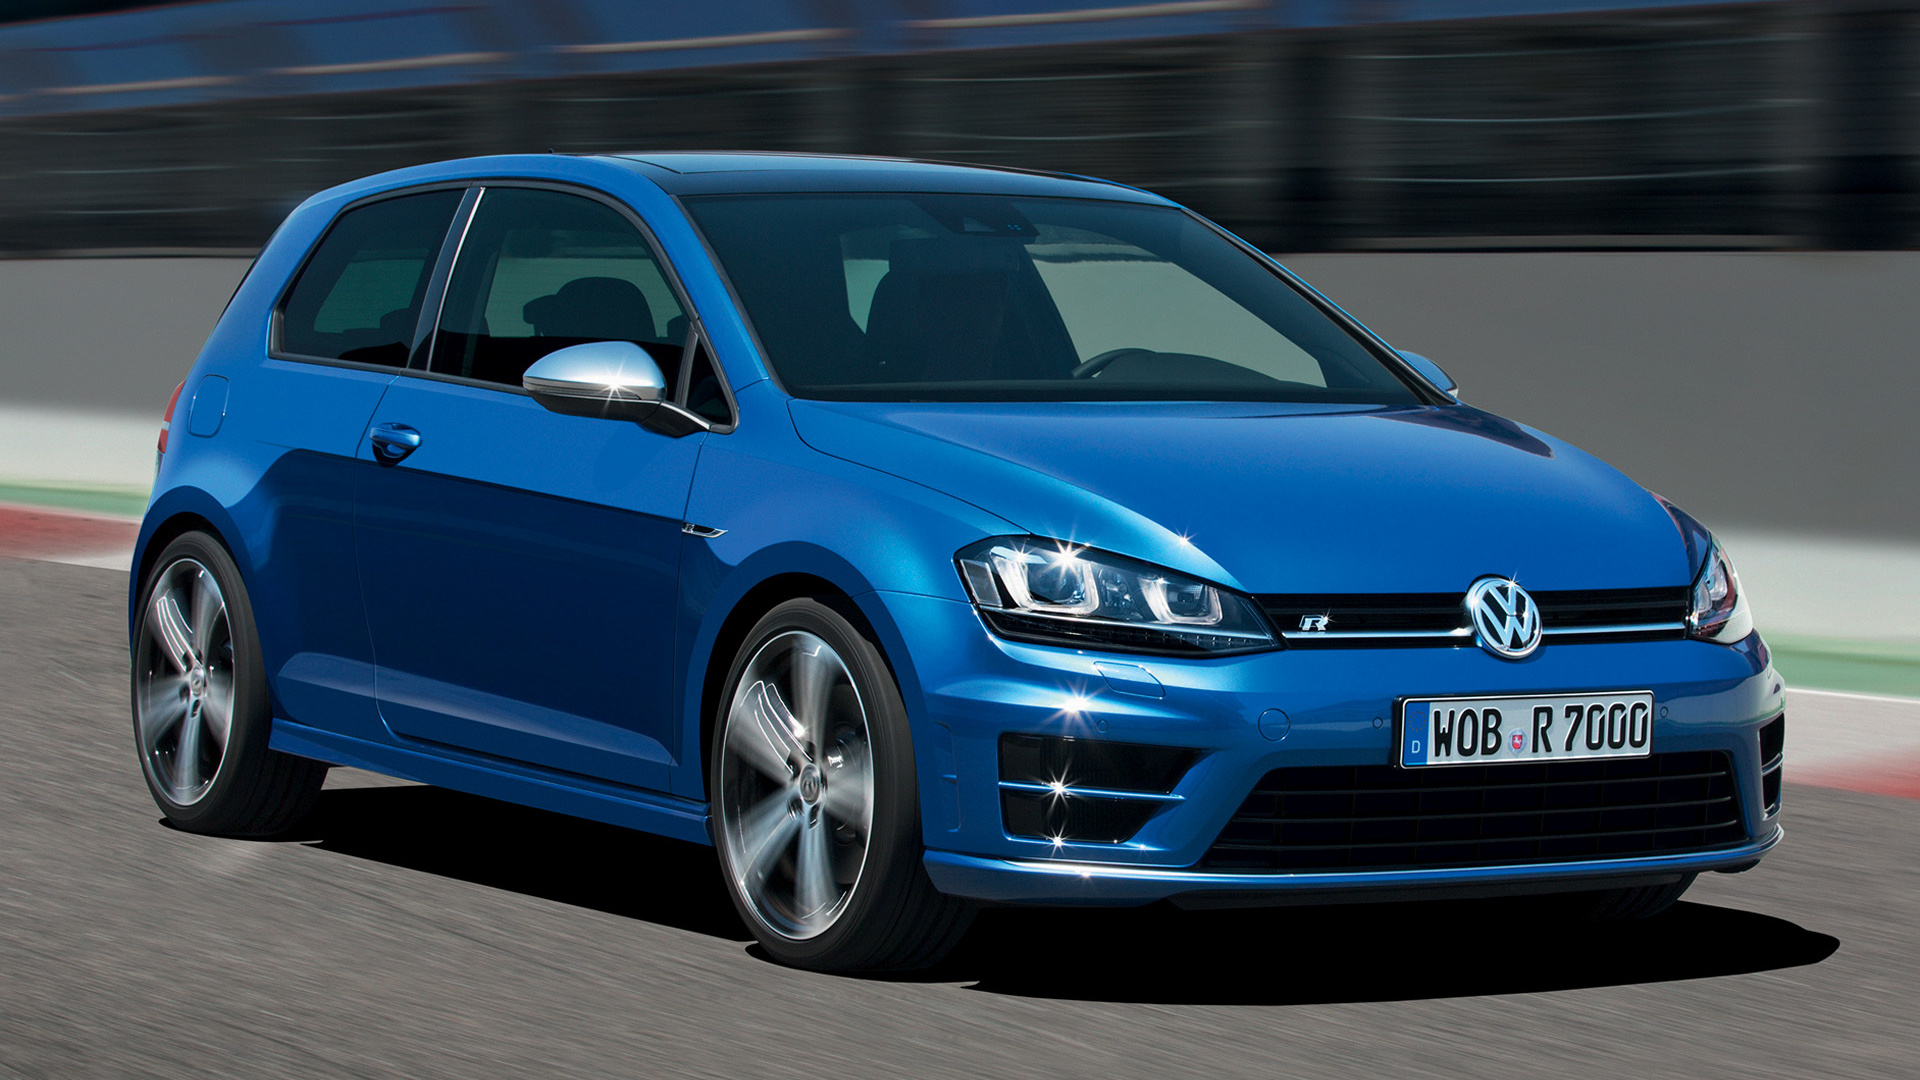 Hd 16 Volkswagen Golf 7 Stance 1355289 Hd Wallpaper